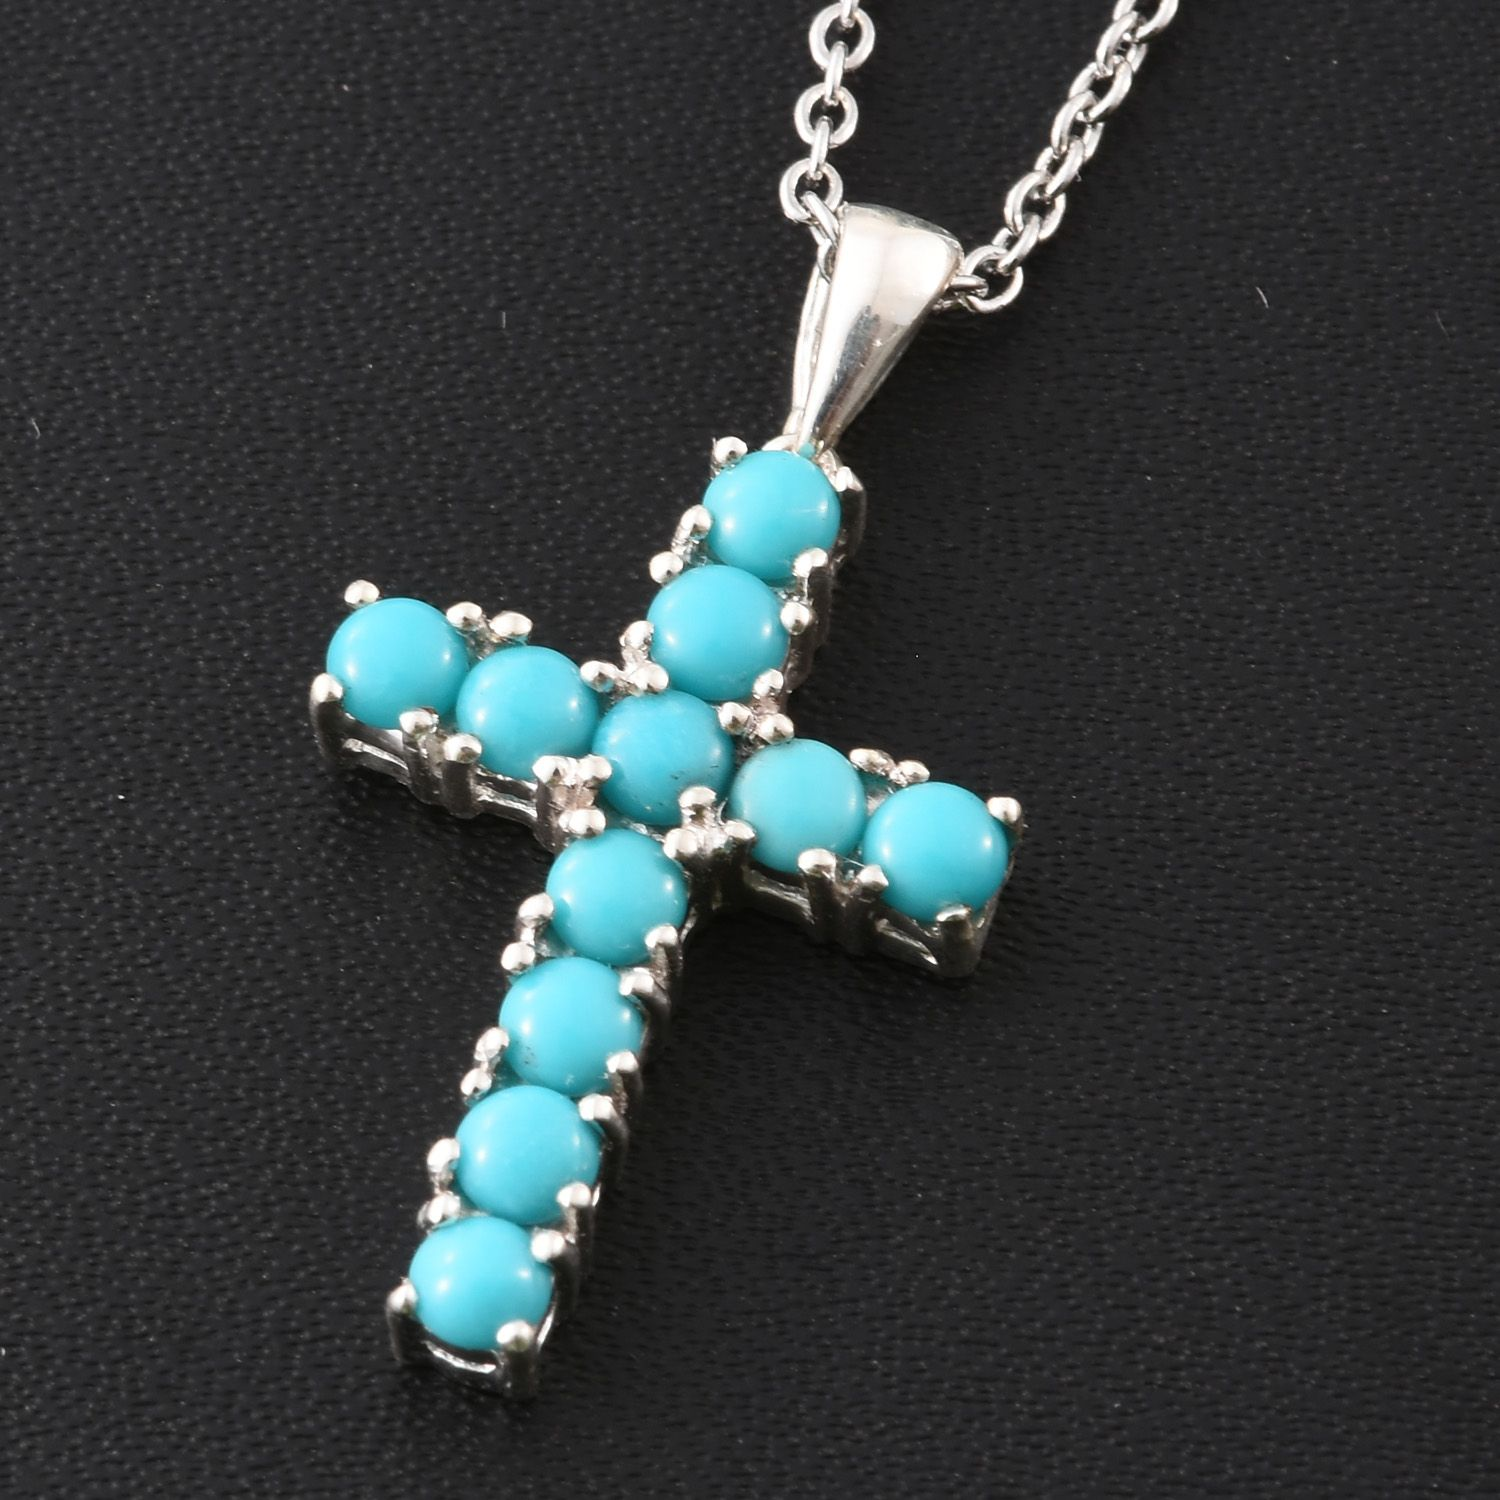 Arizona sleeping beauty turquoise sterling silver cross pendant with arizona sleeping beauty turquoise sterling silver cross pendant with stainless steel chain 20 in tgw 102 cts 2632971 aloadofball